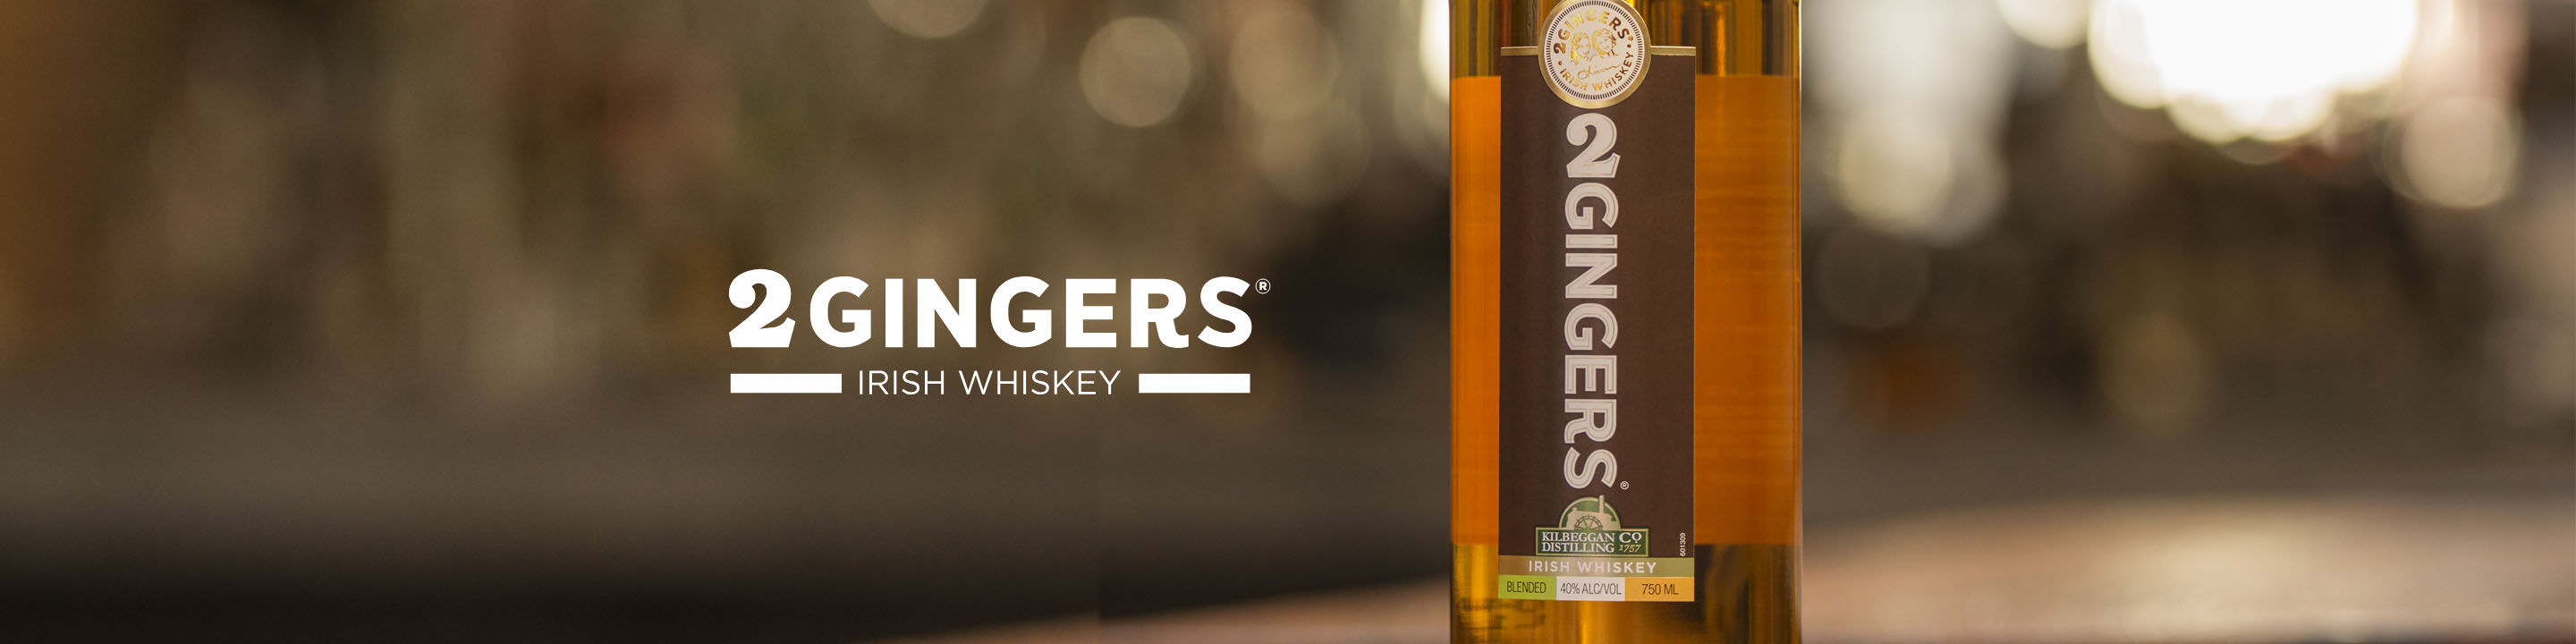 Smooth and slightly sweet to start, followed with a tingle of honey and citrus notes. 2 GINGERS® is a blended Irish whiskey that is distilled twice and aged 4 years in the mild climate of Ireland at the Kilbeggan Distillery, allowing its flavor to live well on its own or as a good base in cocktails.  Buy 2 Gingers online now from nearby liquor stores via Minibar Delivery.